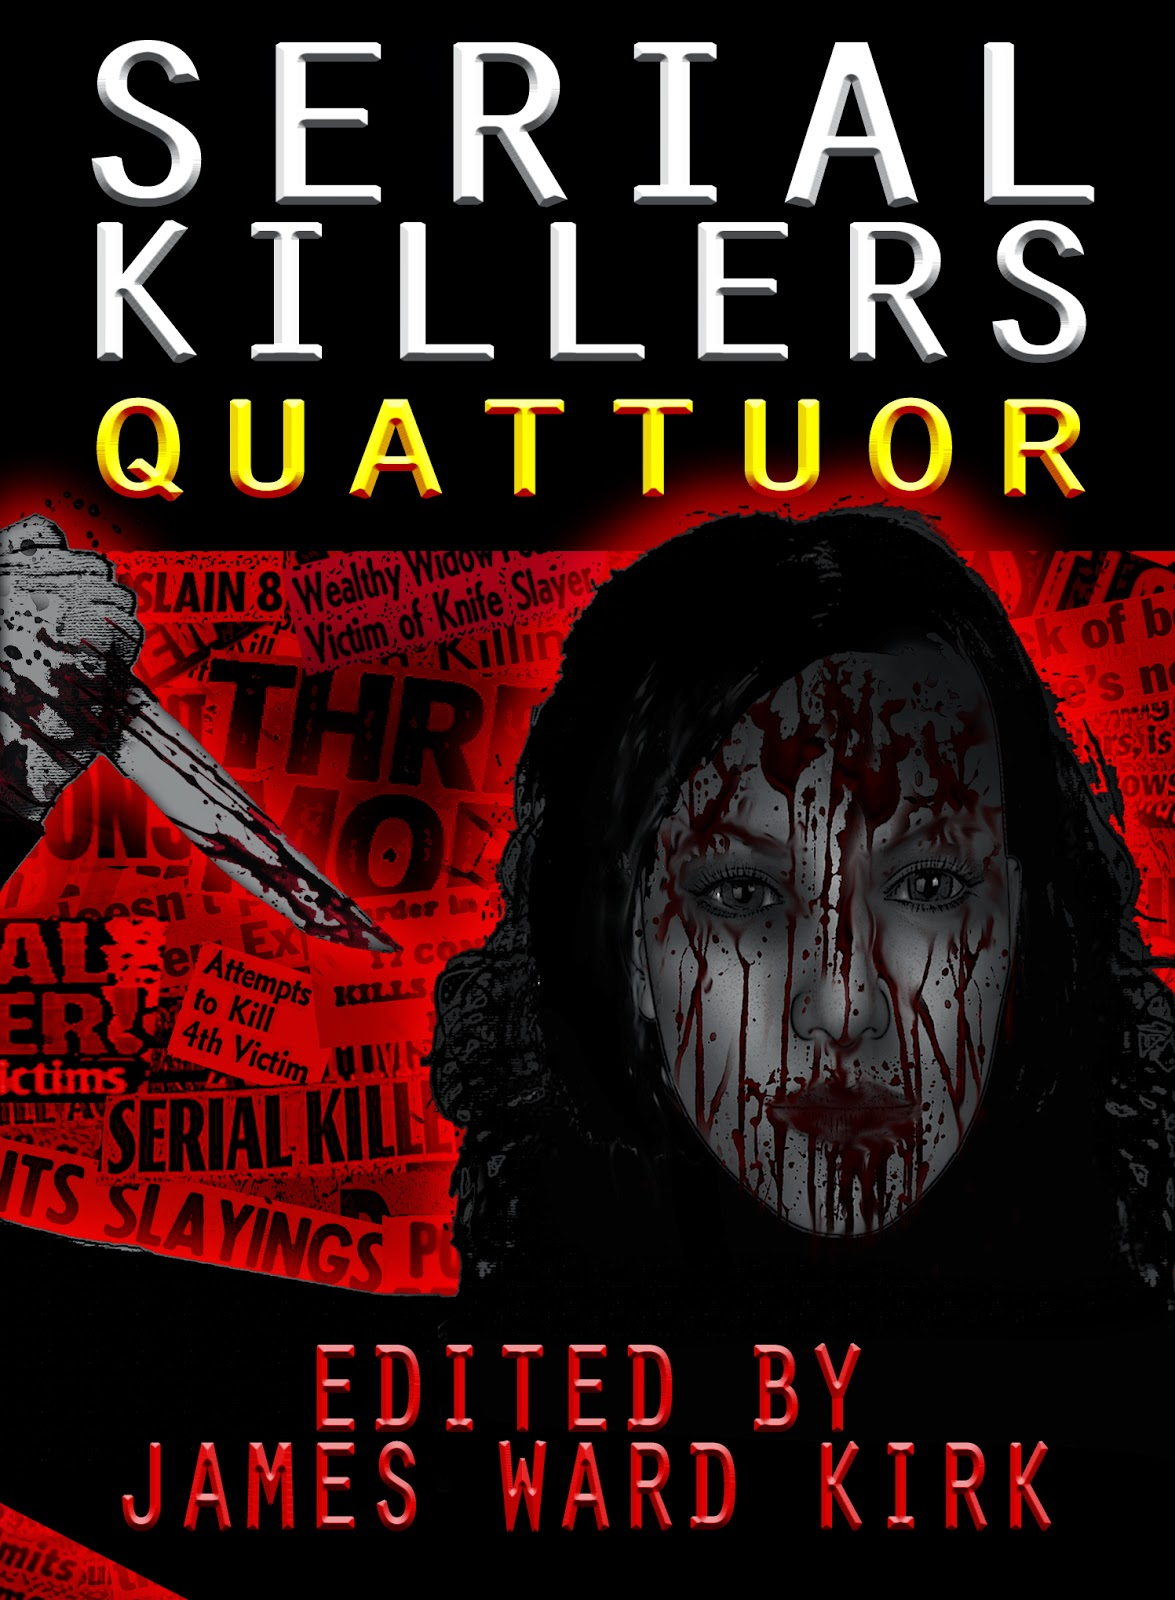 http://www.amazon.com/Serial-Killers-Quattuor-James-Ward/dp/0692023453/ref=sr_1_sc_2?s=books&ie=UTF8&qid=1407974493&sr=1-2-spell&keywords=serial+killers+quattor